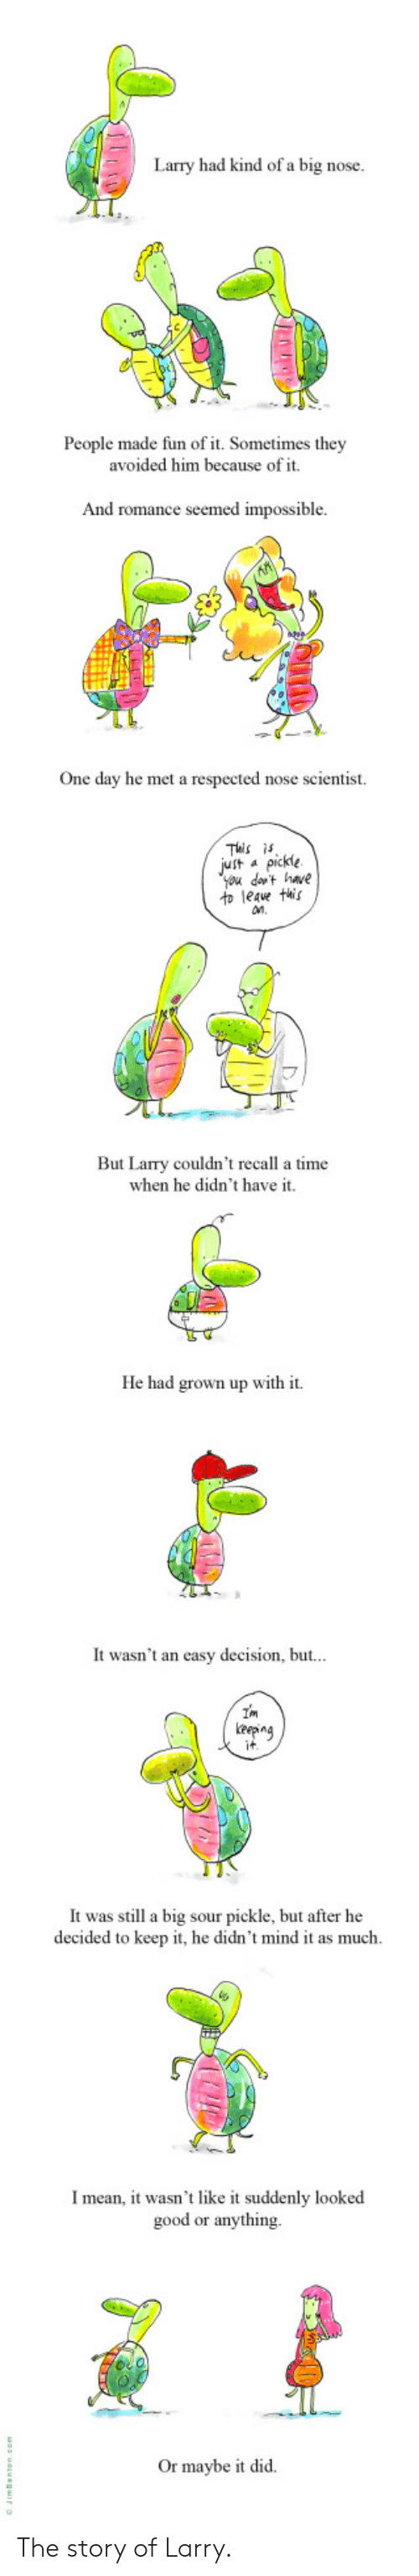 Good, Time, and Mind: Larry had kind of a big nose.  People made fun of it. Sometimes they  avoided him because of it.  And romance seemed impossible  One day he met a respected nose scientist.  This is  Jut apickle  you dat have  to leave this  n.  But Larry couldn't recall a time  when he didn't have it.  He had grown up with it  It wasn't an easy decision, but...  Im  eepng  it  It was still a big sour pickle, but after he  decided to keep it, he didn't mind it as much  Imean, it wasn't like it suddenly looked  good or anything  Or maybe it did The story of Larry.